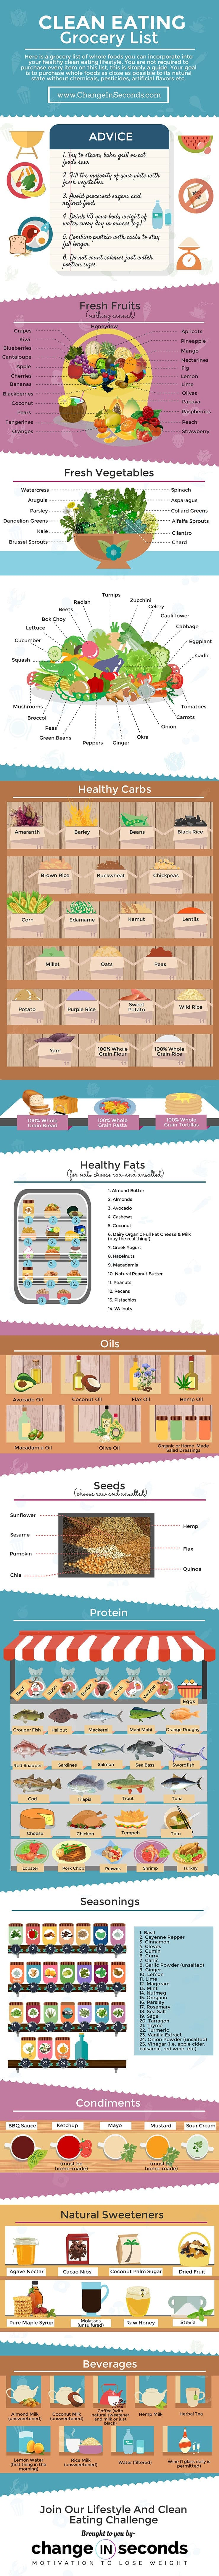 Clean Eating Grocery Shopping List Infographic